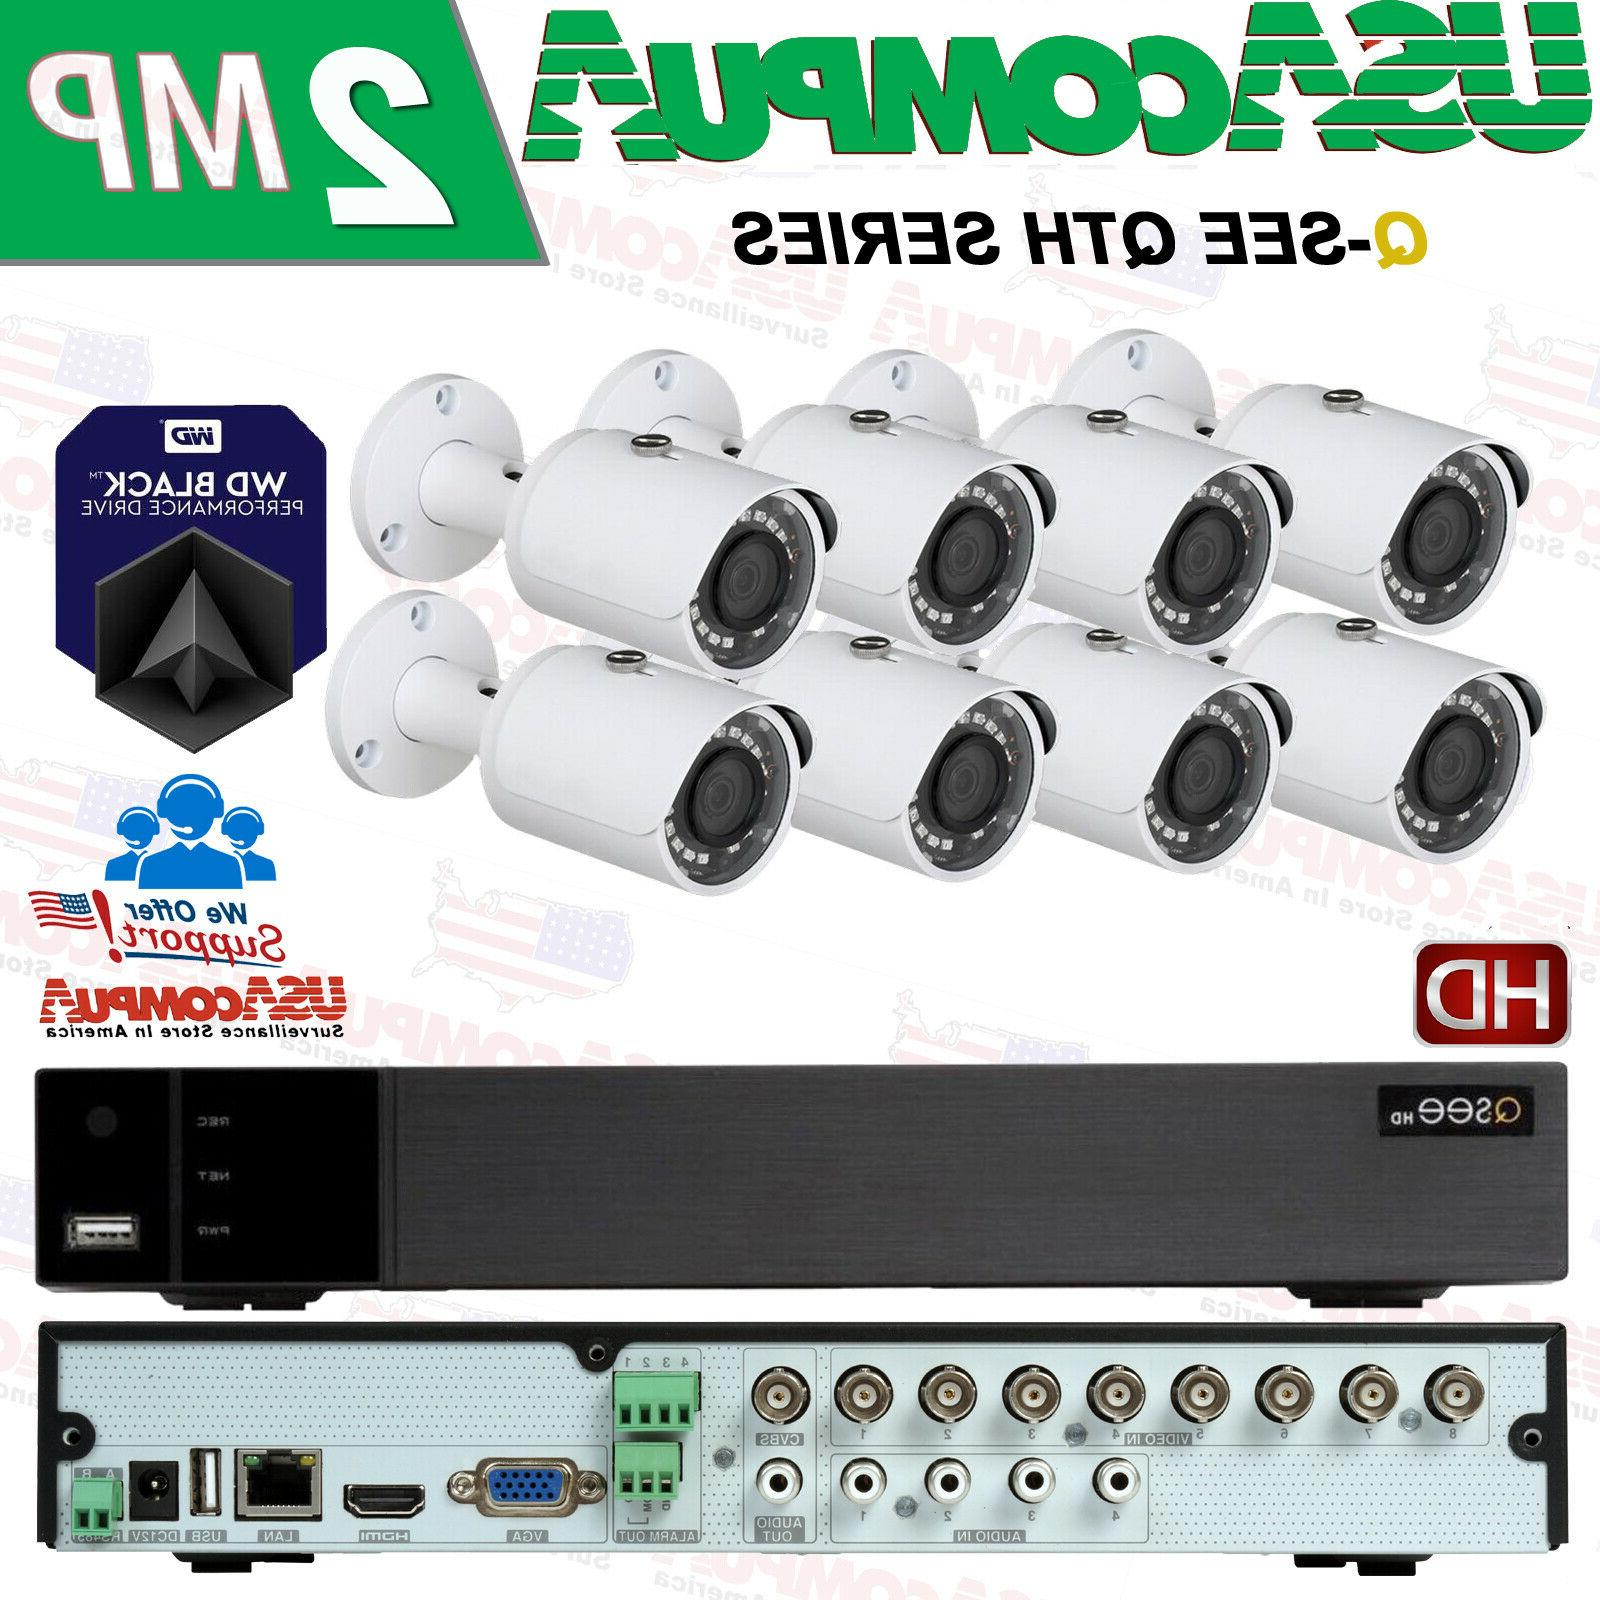 q see security system 8 channel kit